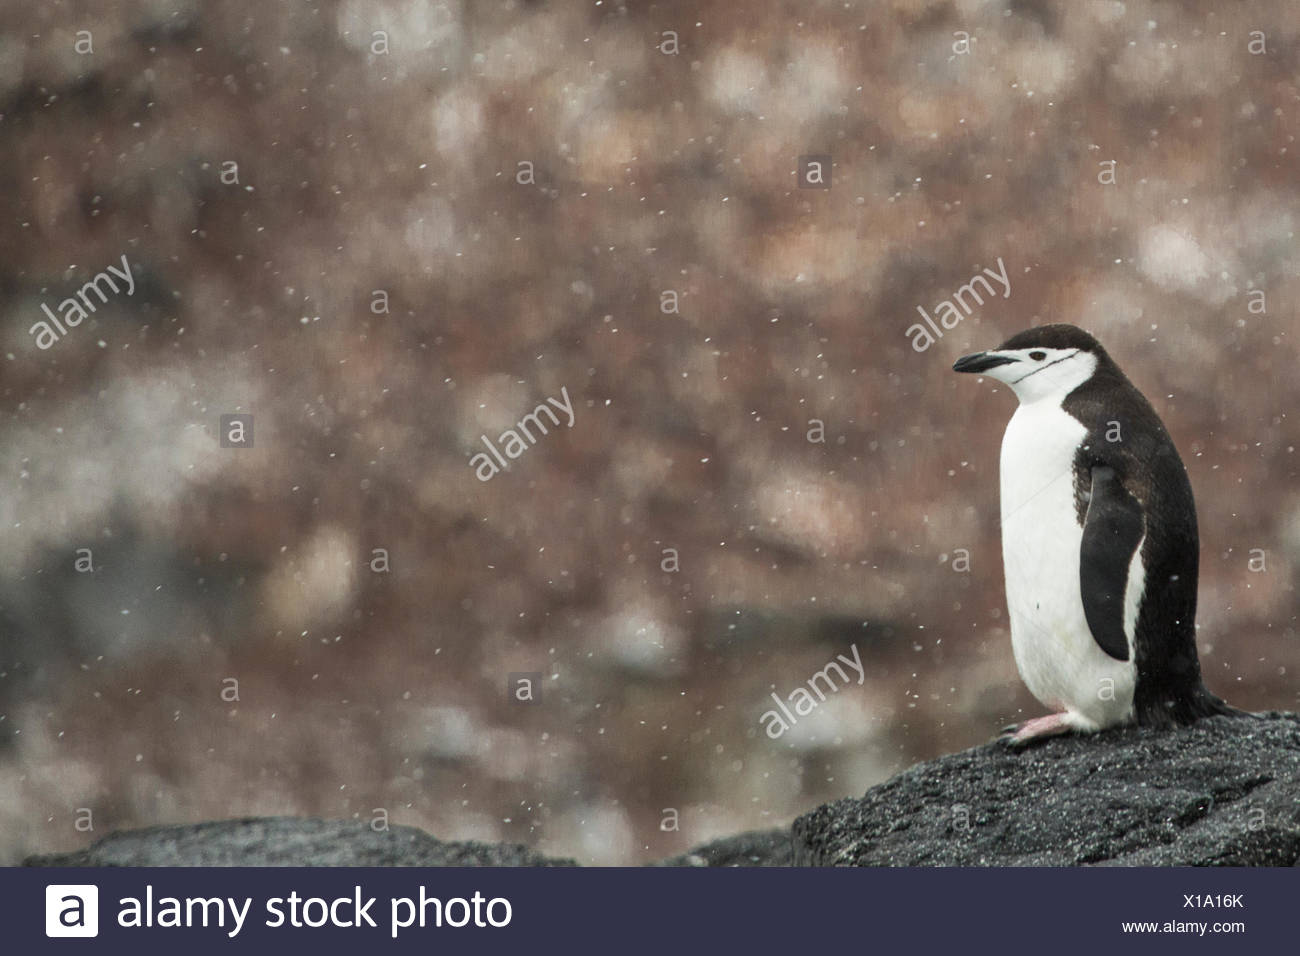 A chinstrap penguin, Pygoscelis antarctica, in a light snow shower. - Stock Image